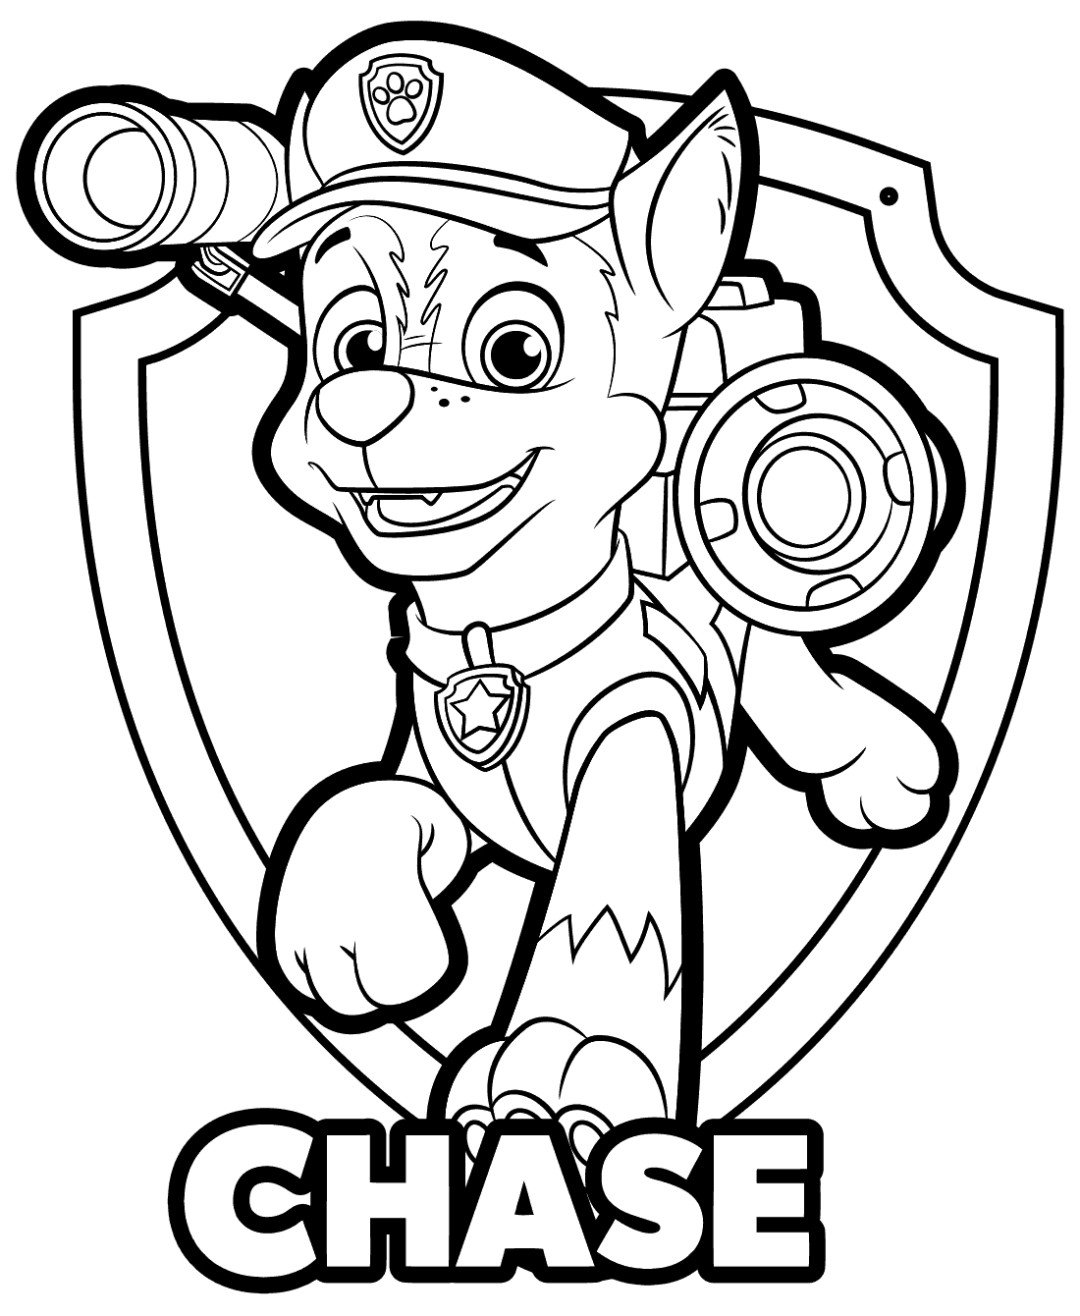 - Paw Patrol Coloring Pages Paw Patrol Coloring Pages, Paw Patrol